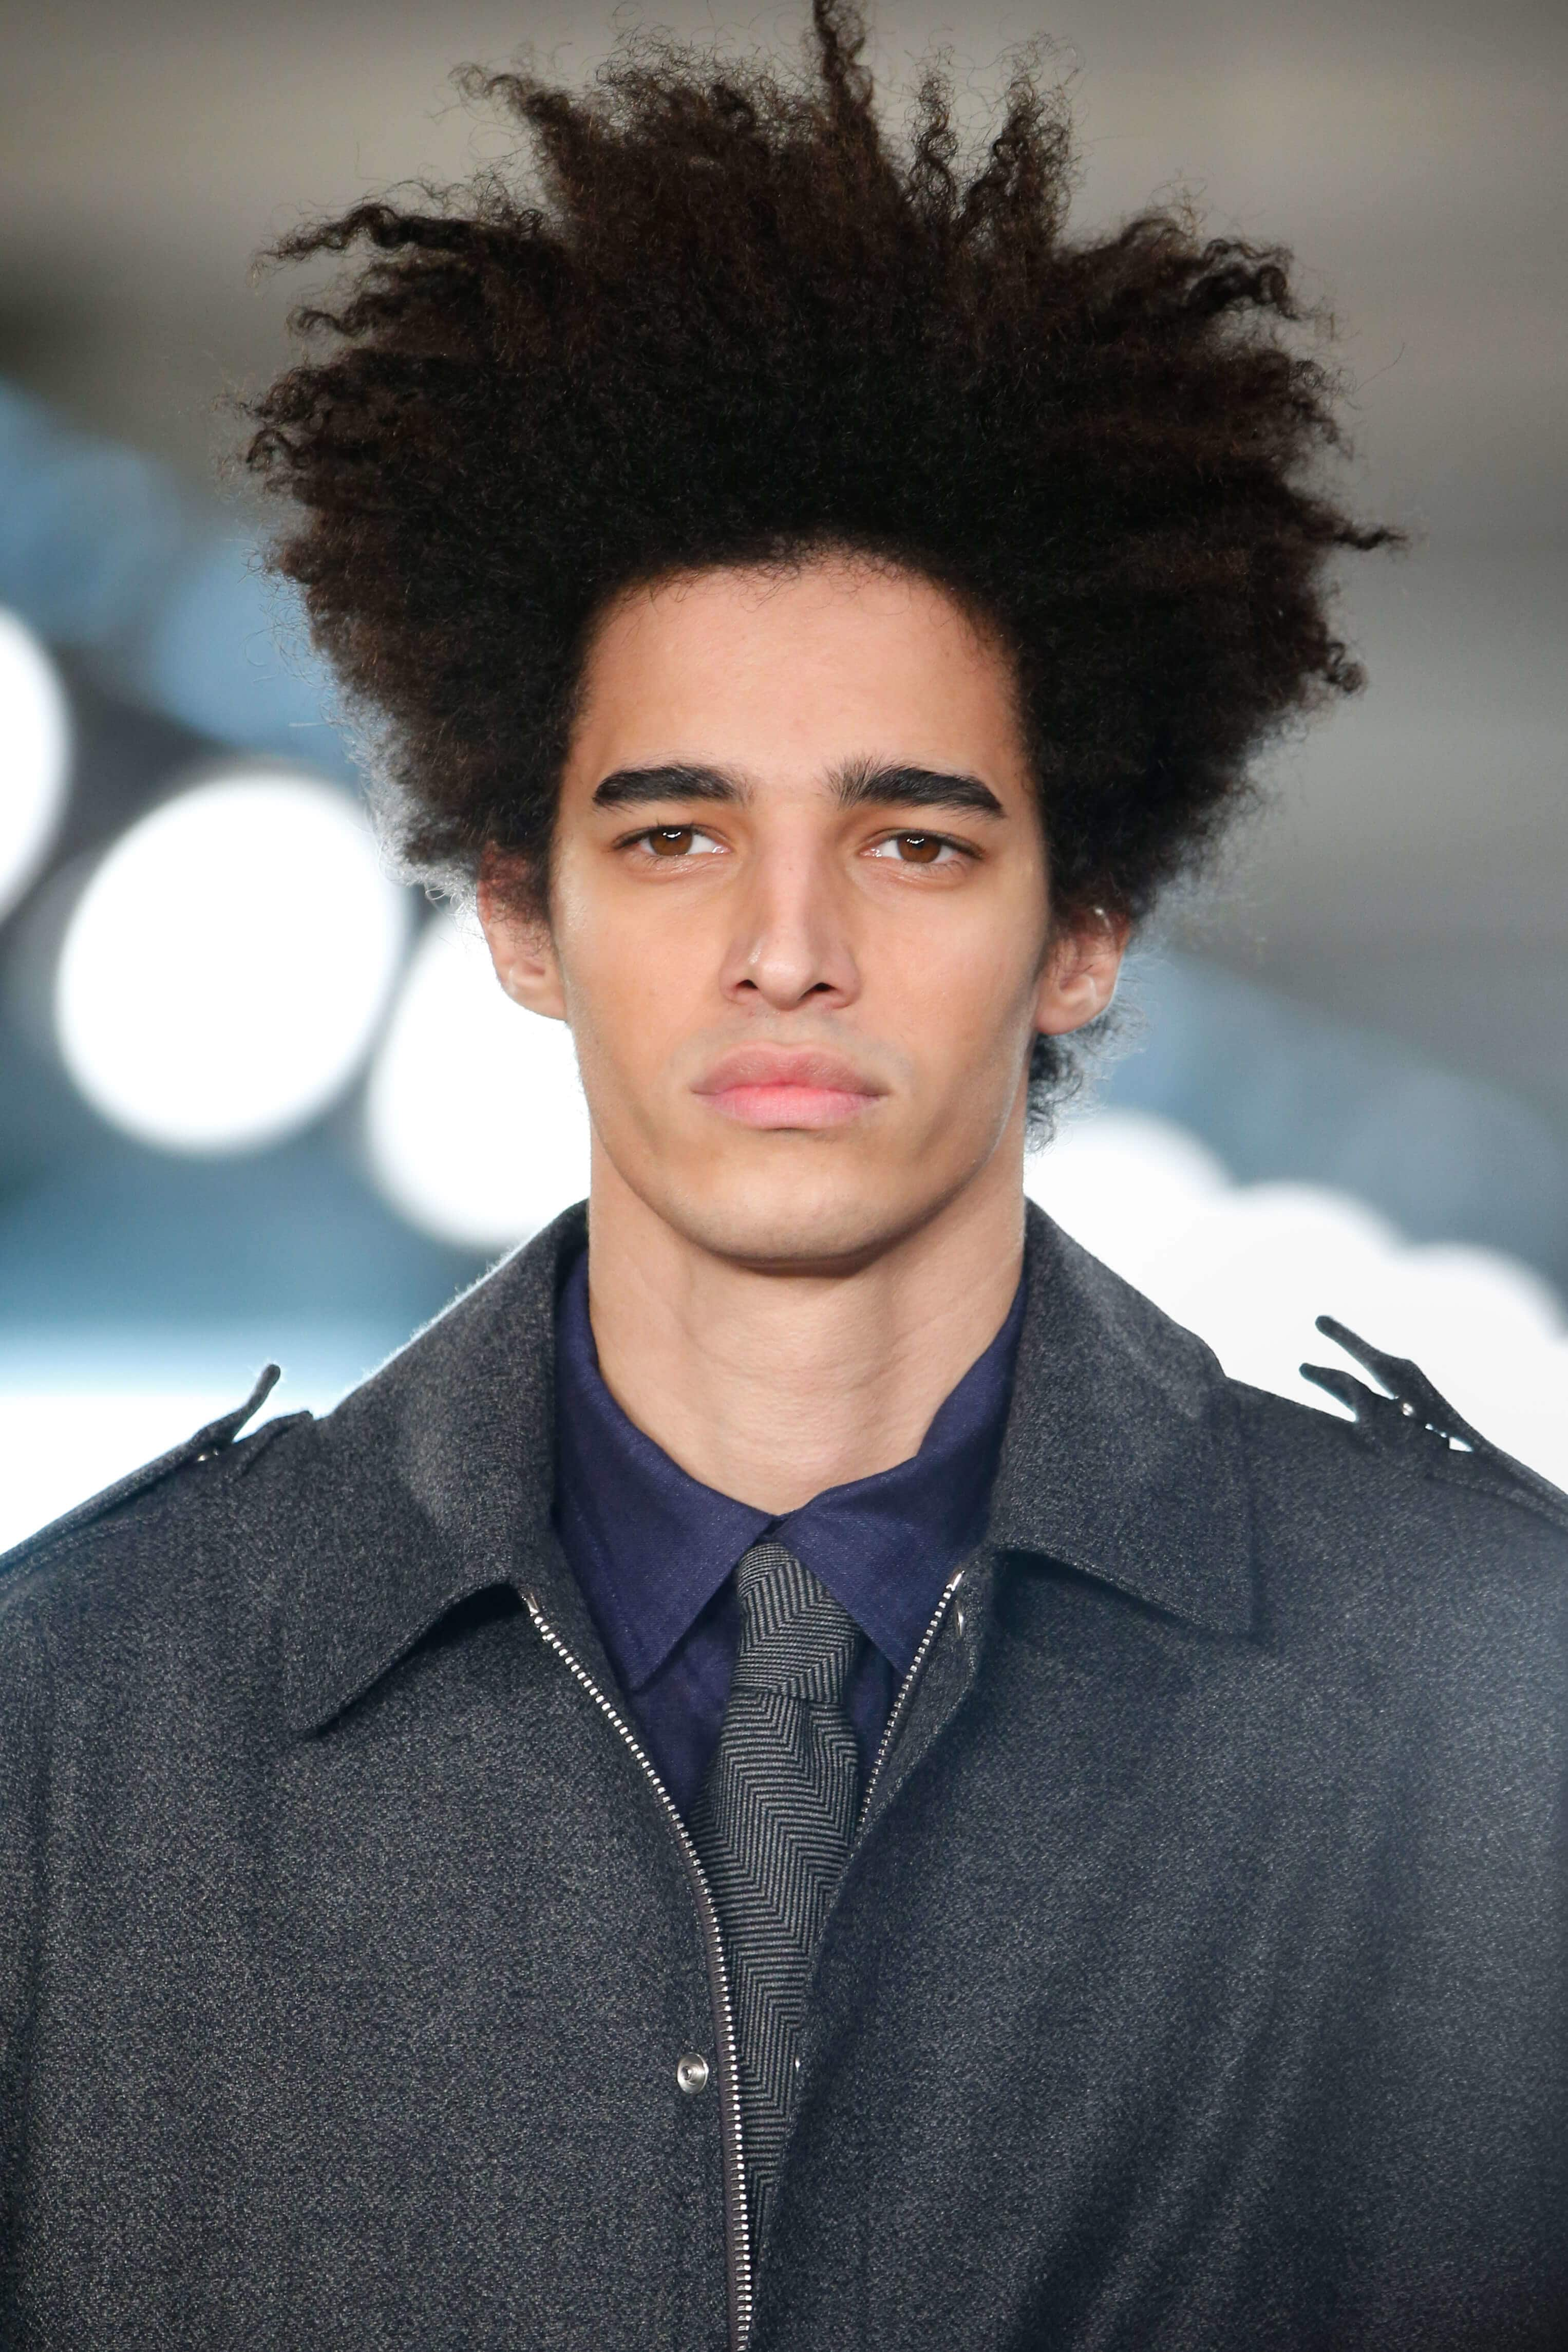 taper haircut afro taper fade cuts edgy cool and stylish ideas for guys 1184